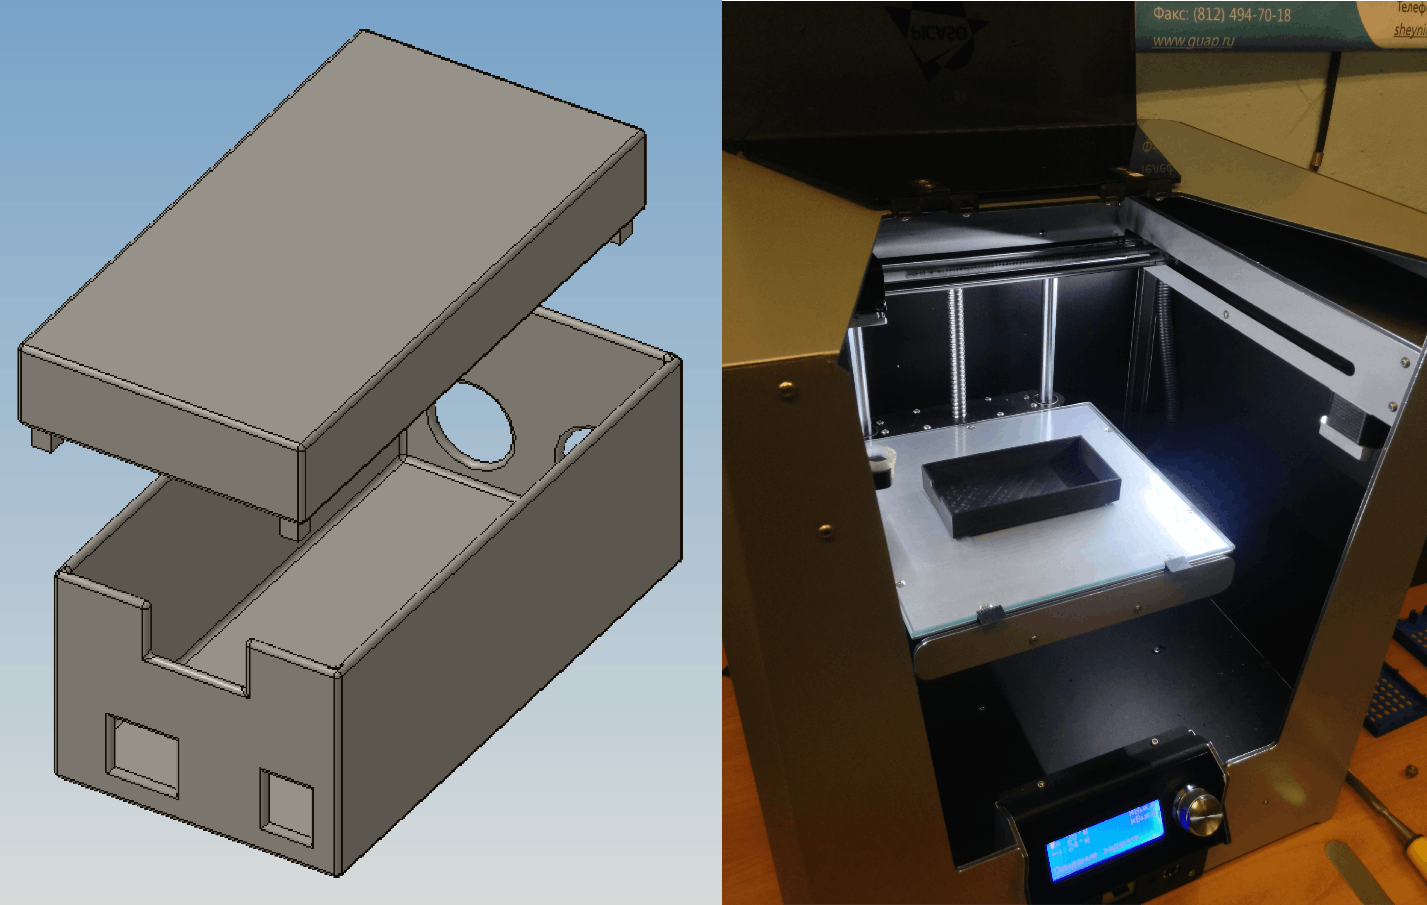 Roof box design and printing